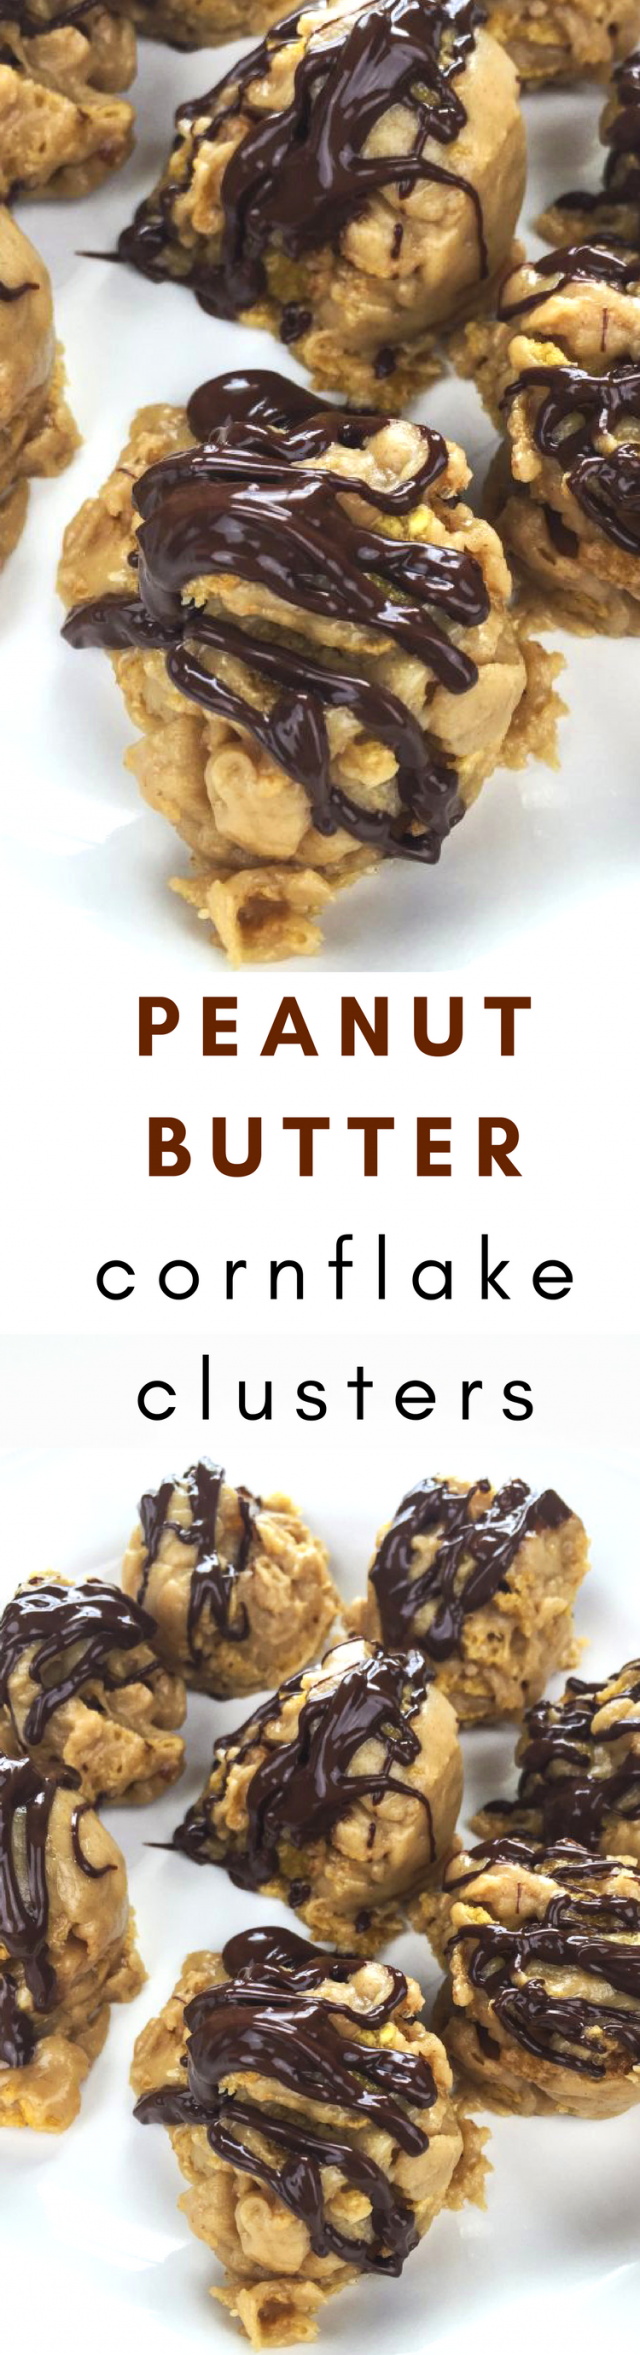 Peanut Butter Cornflake Clusters Dessert. You probably have all of these ingredients in your pantry RIGHT NOW.